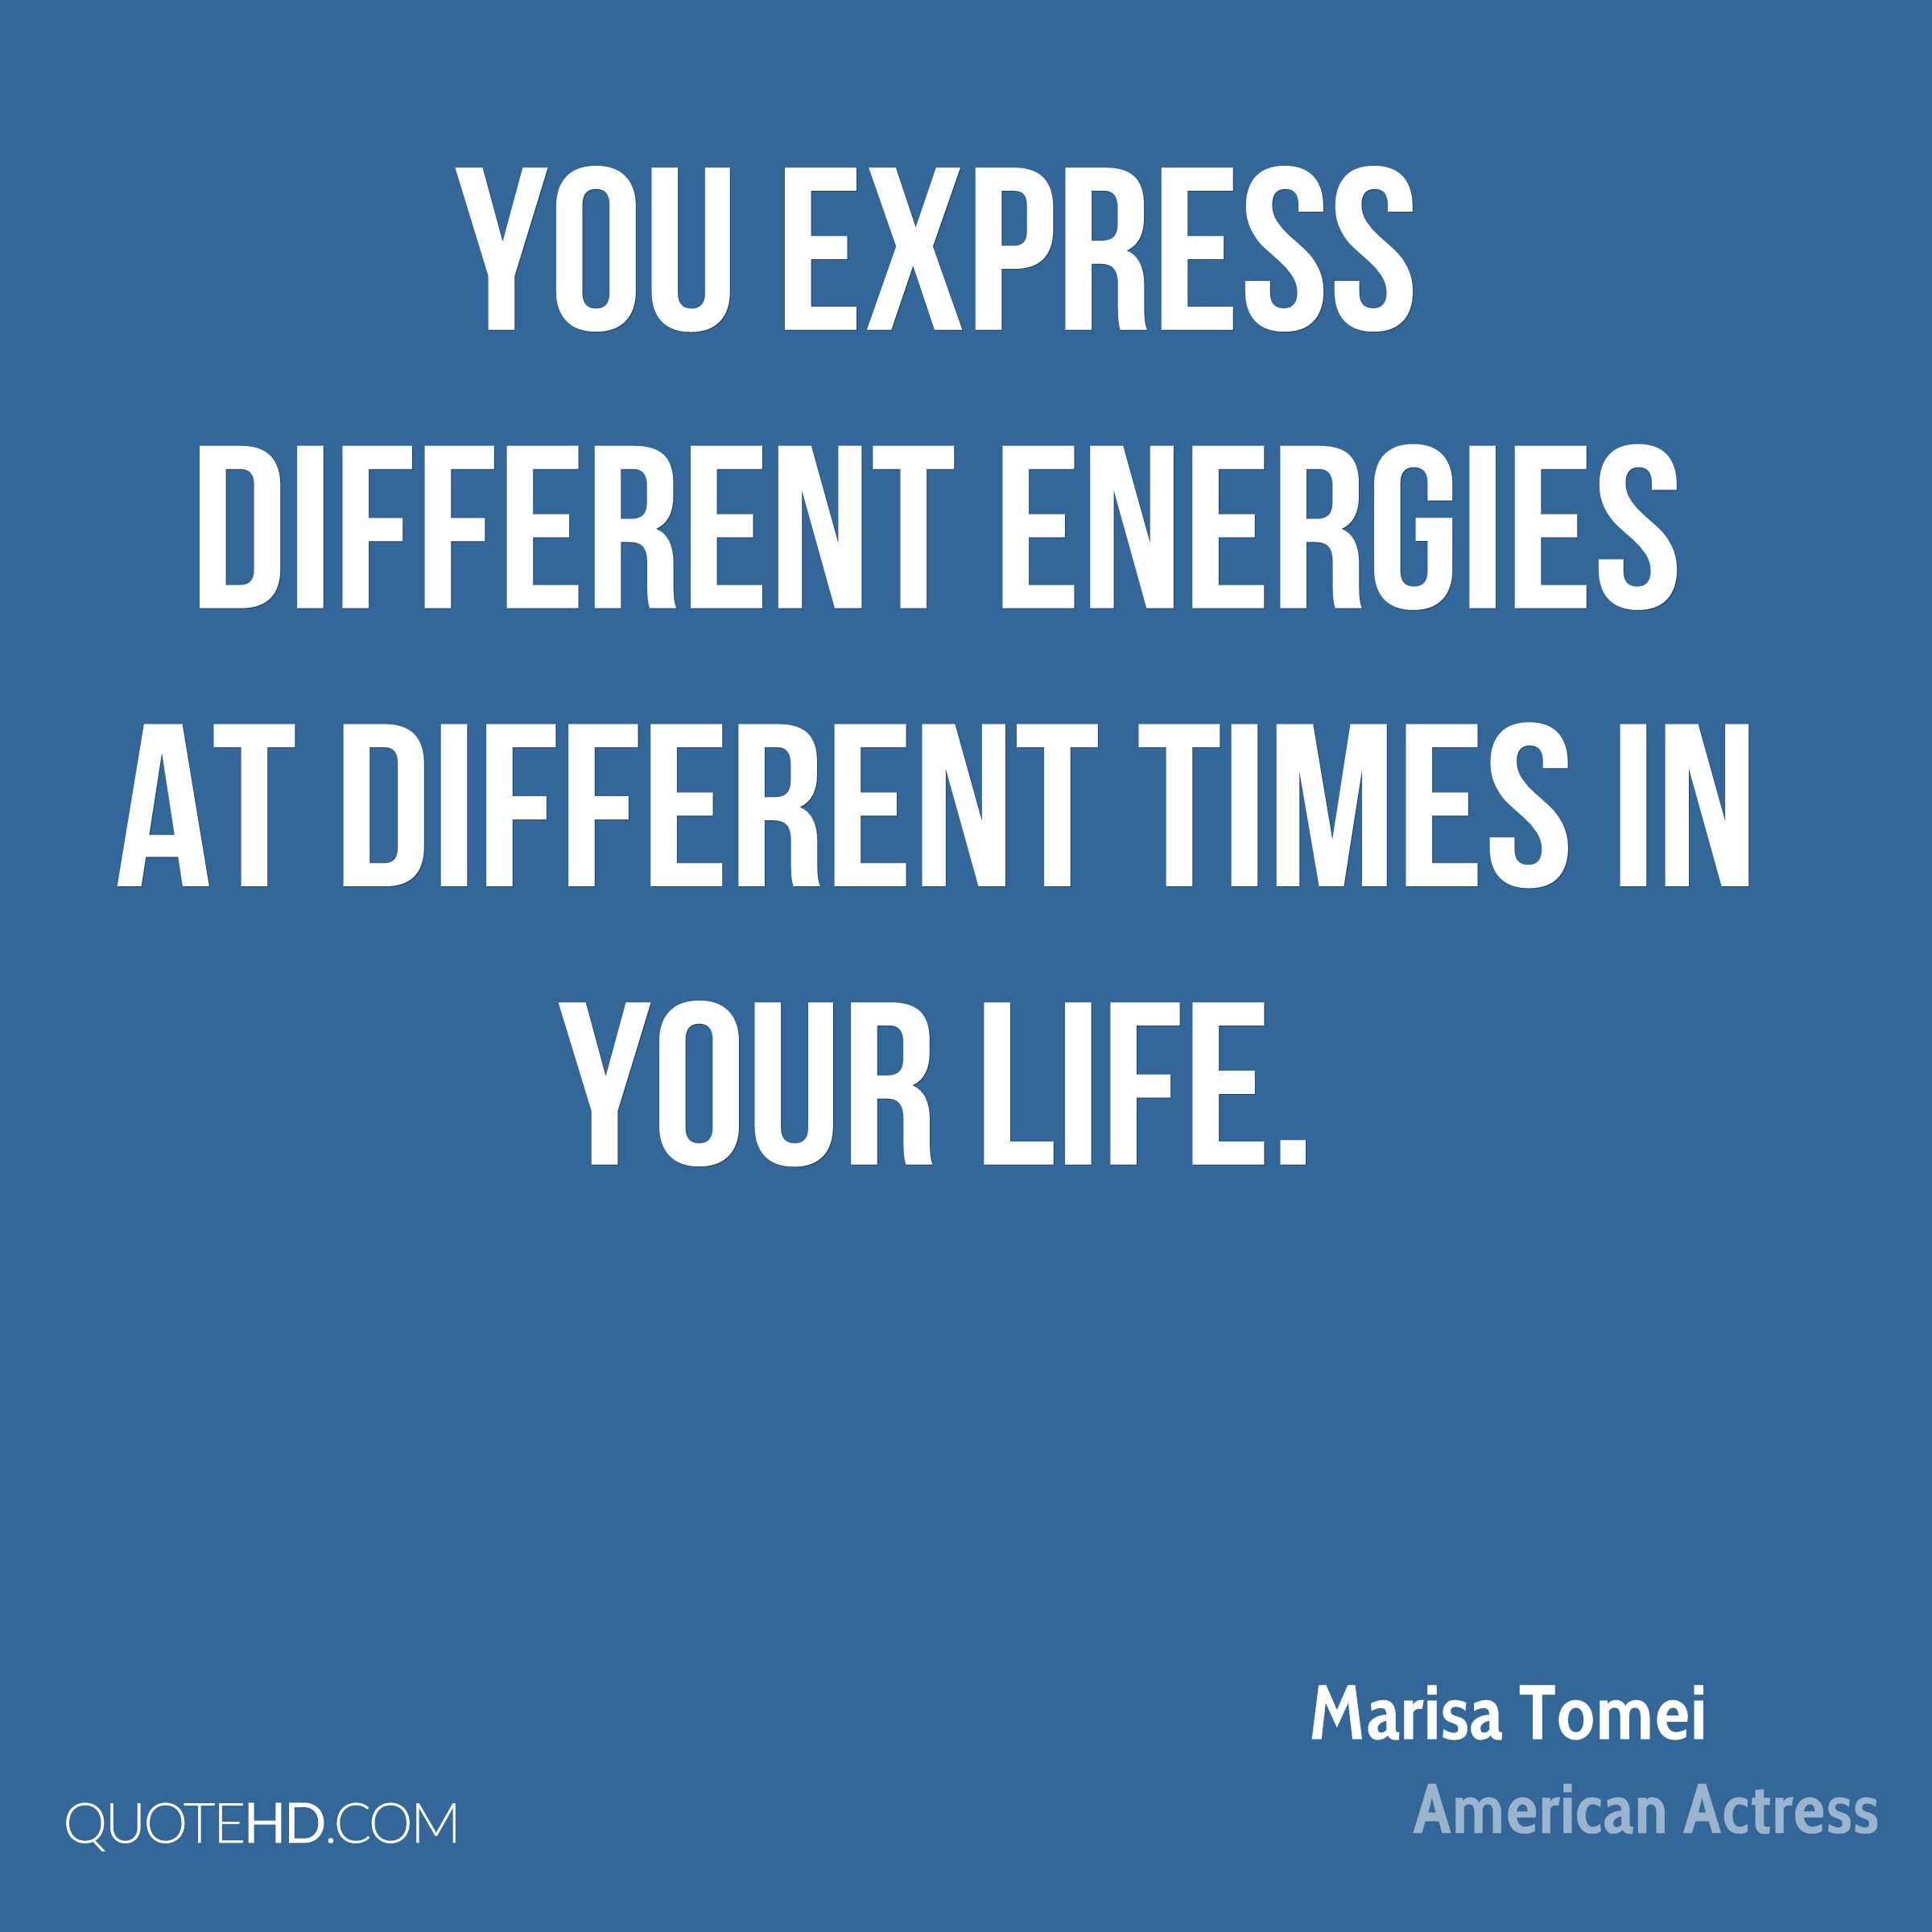 You express different energies at different times in your life.